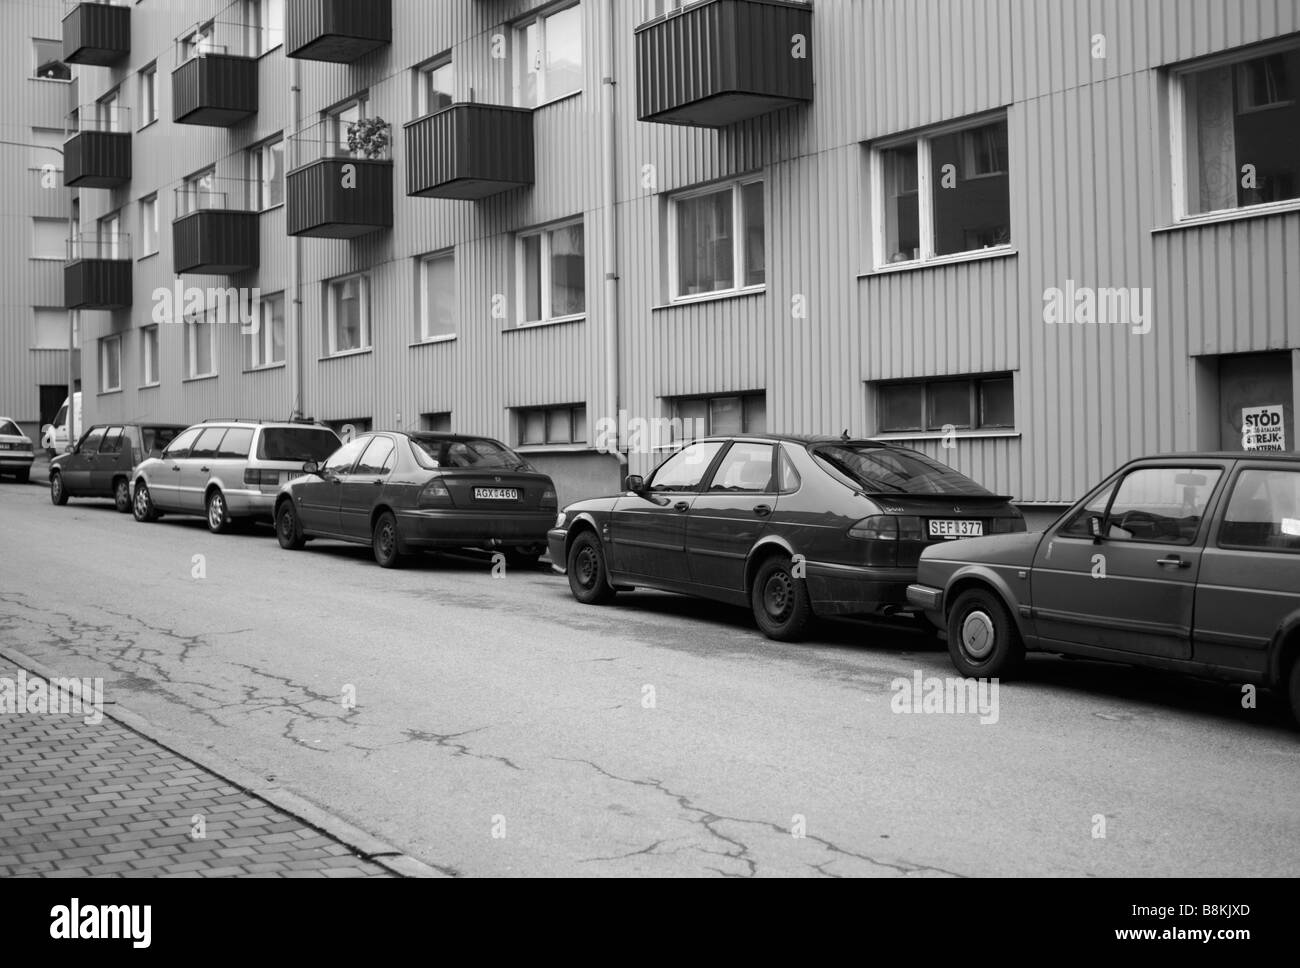 Parked SAAB 9-3 in Helsingborg, Sweden. Picture taken during their big crisis in February 2009. FOR EDITORIAL USE - Stock Image